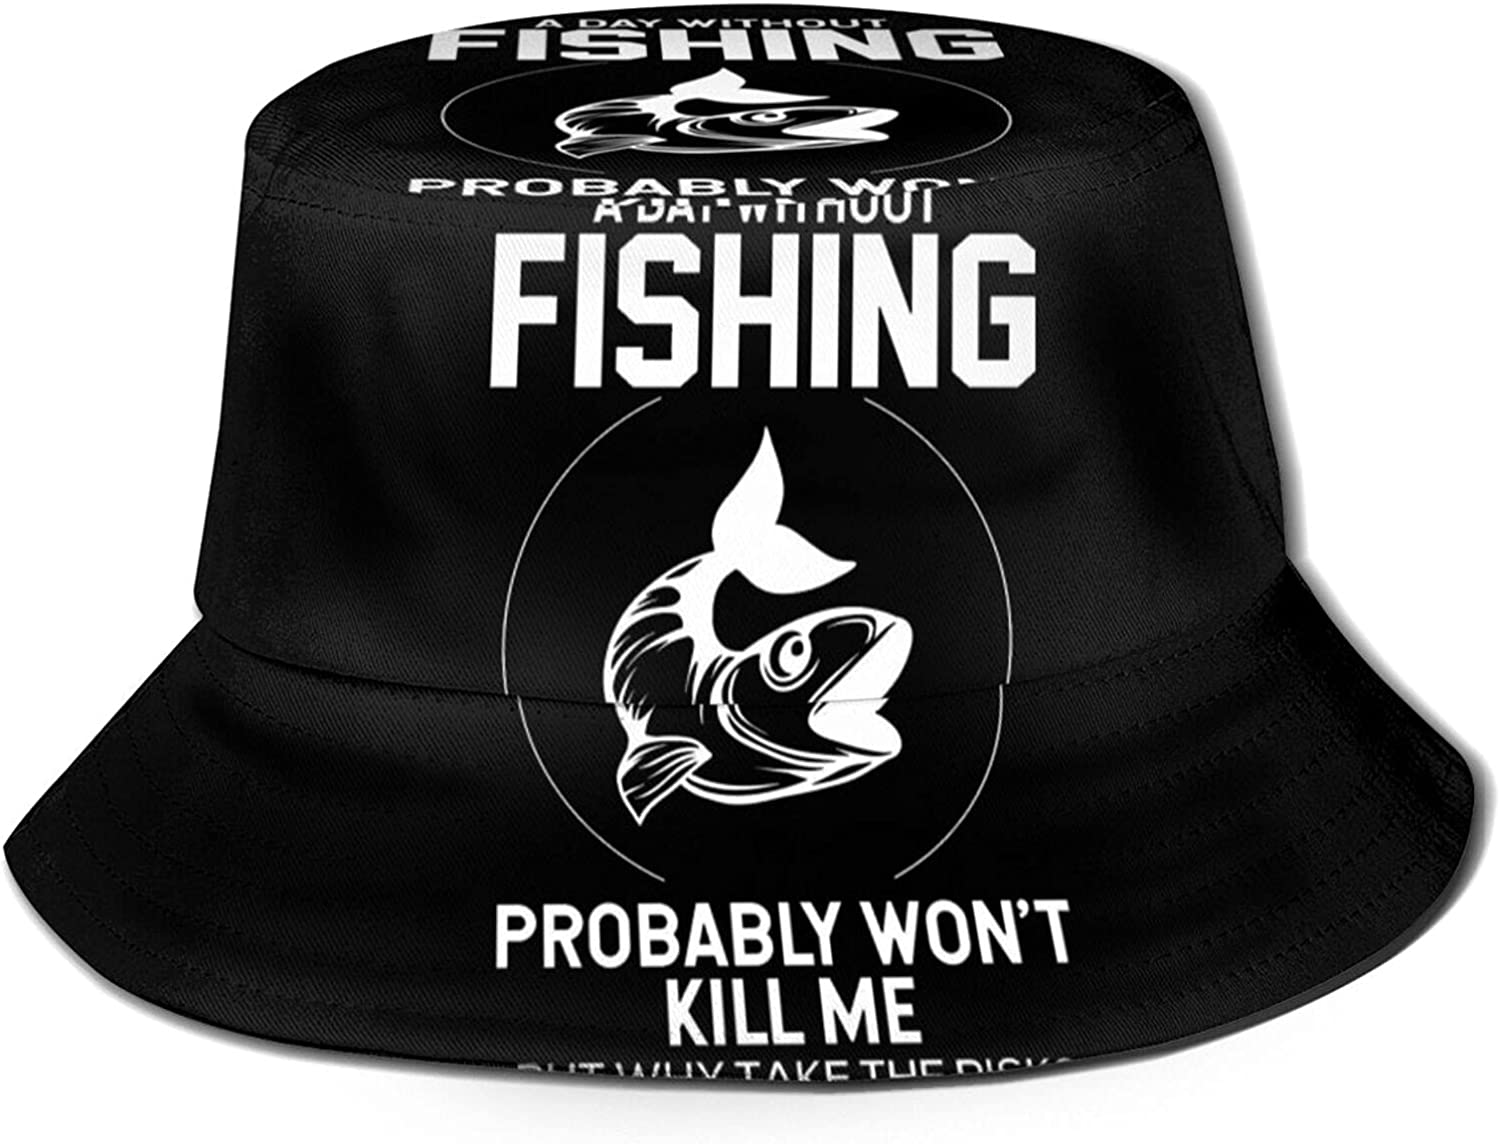 Free shipping Max 48% OFF on posting reviews A Day Without Fishing Probably Won't Kill Me Why Ri The Take But